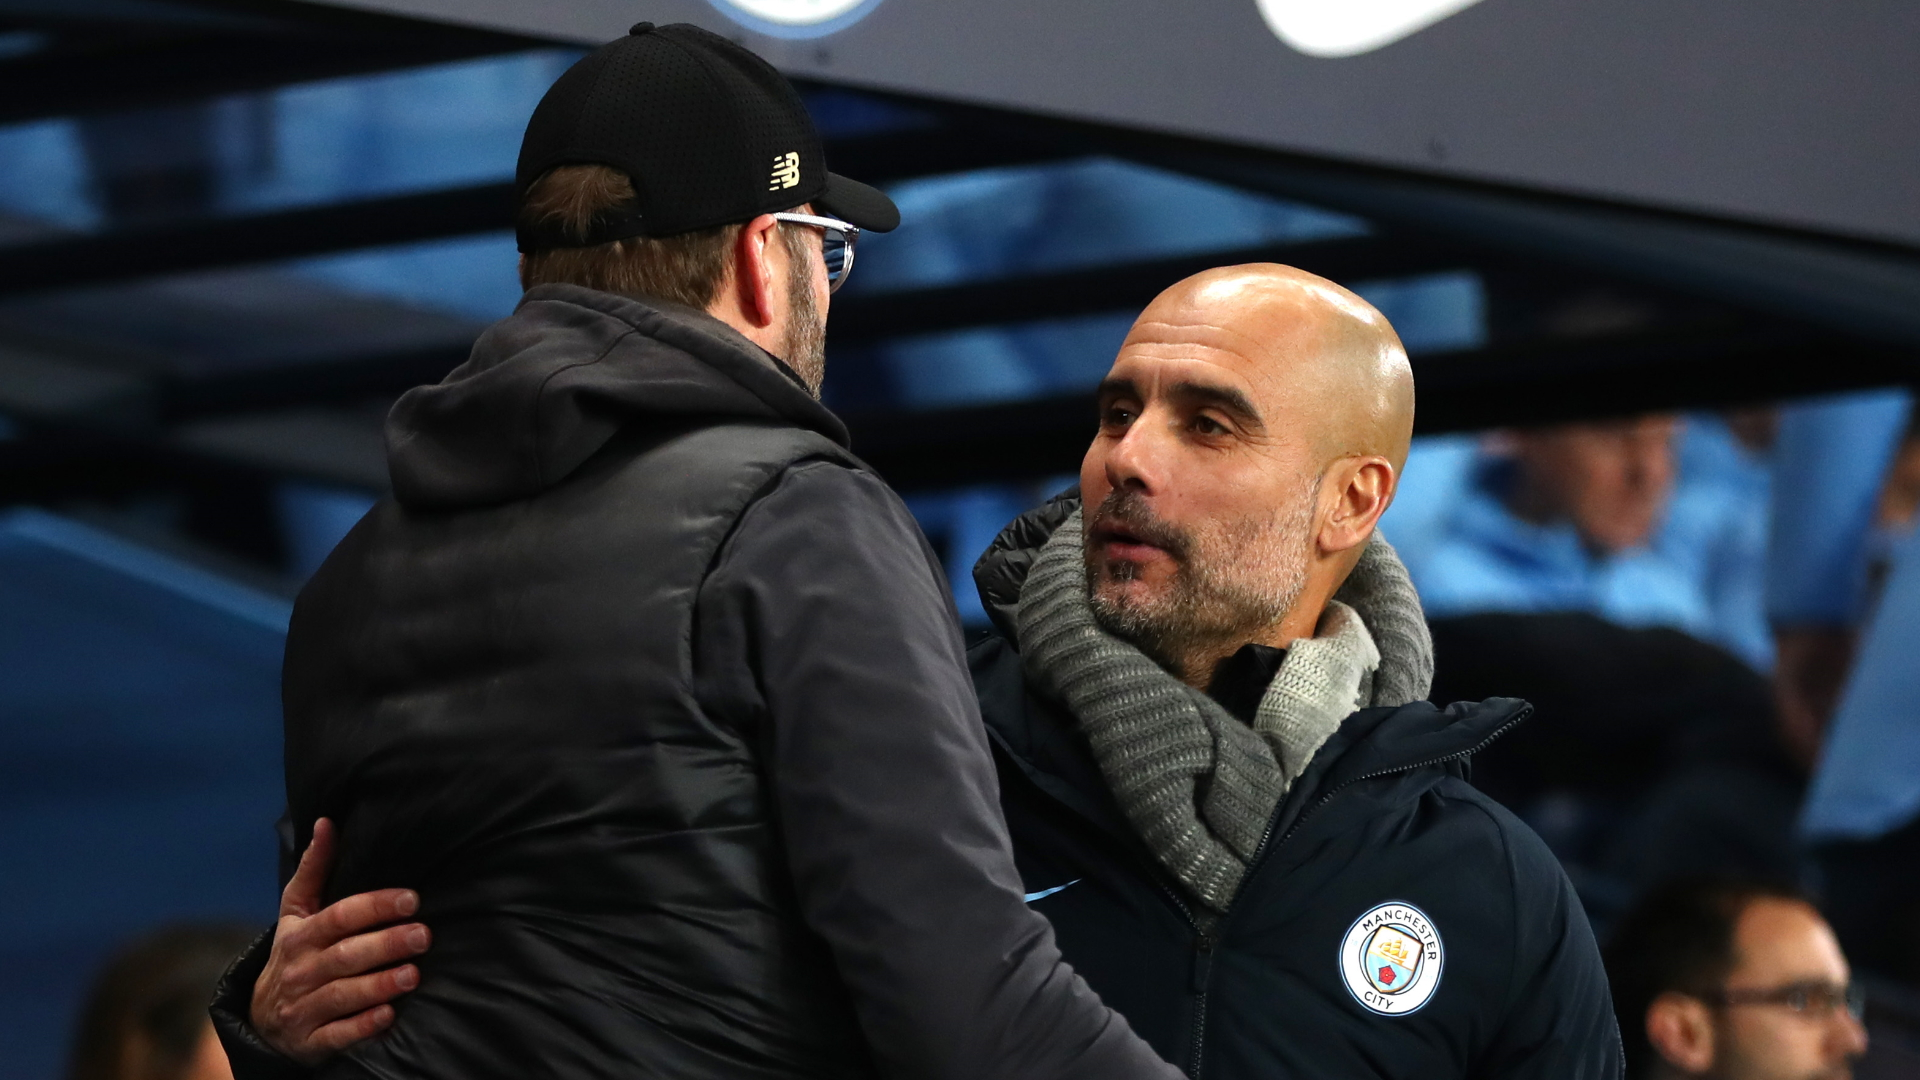 Jurgen Klopp has been Pep Guardiola's biggest challenge in management